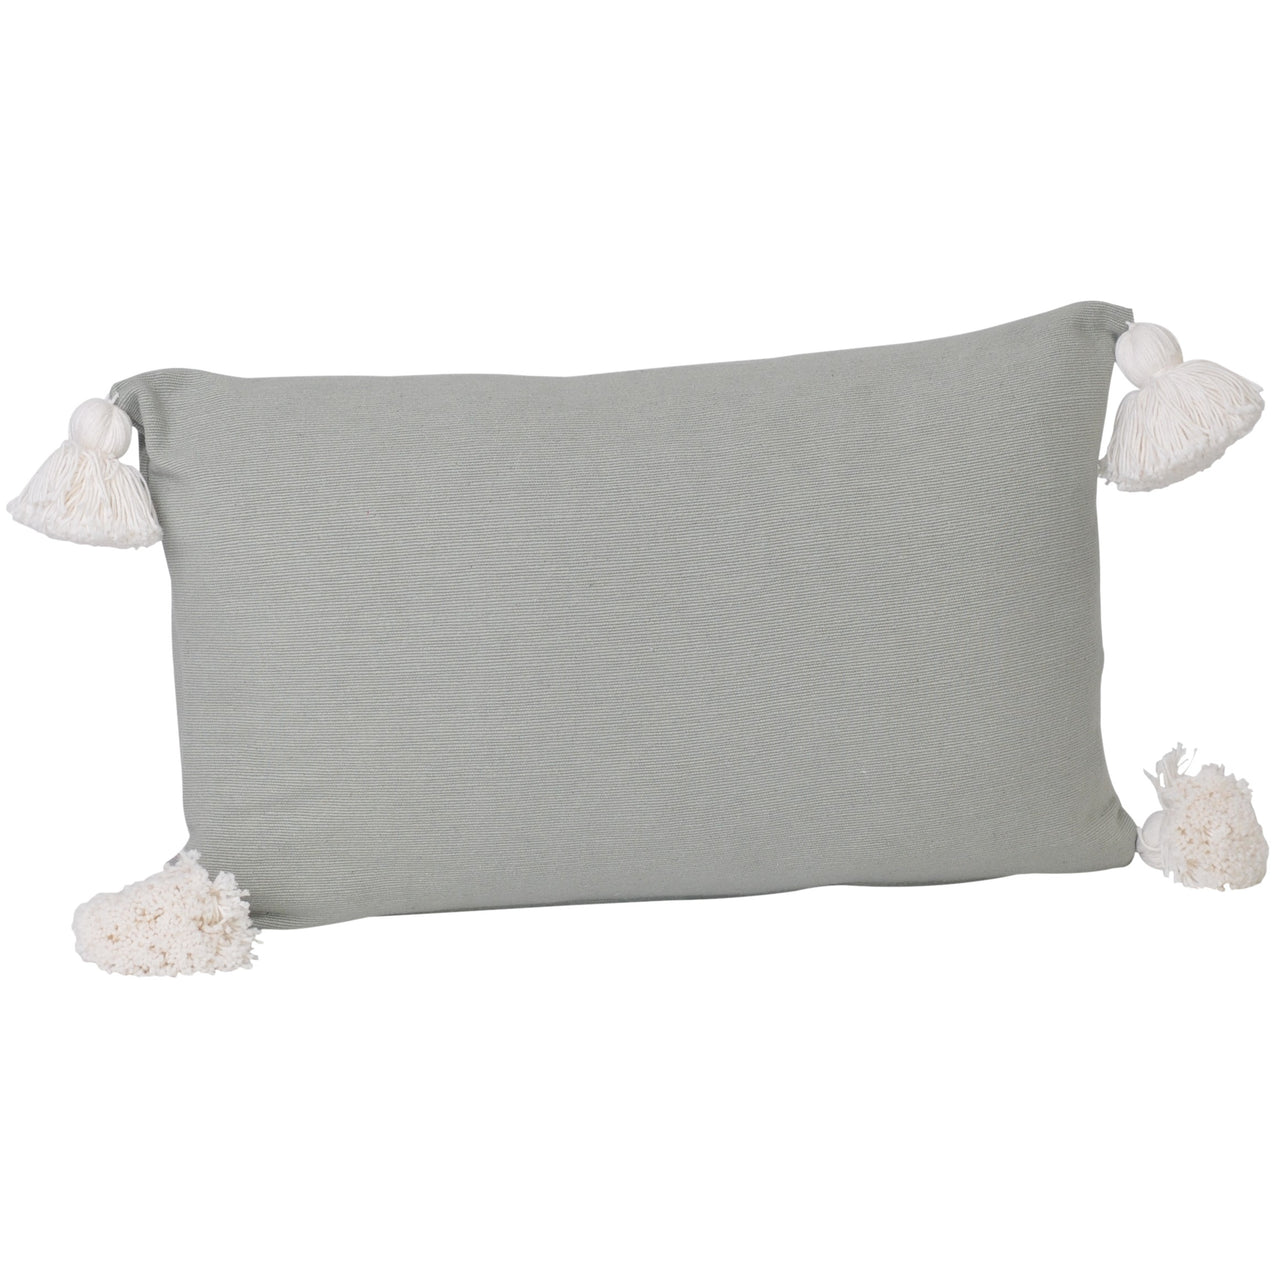 Soho Tassel Lumbar Cushion- Sage